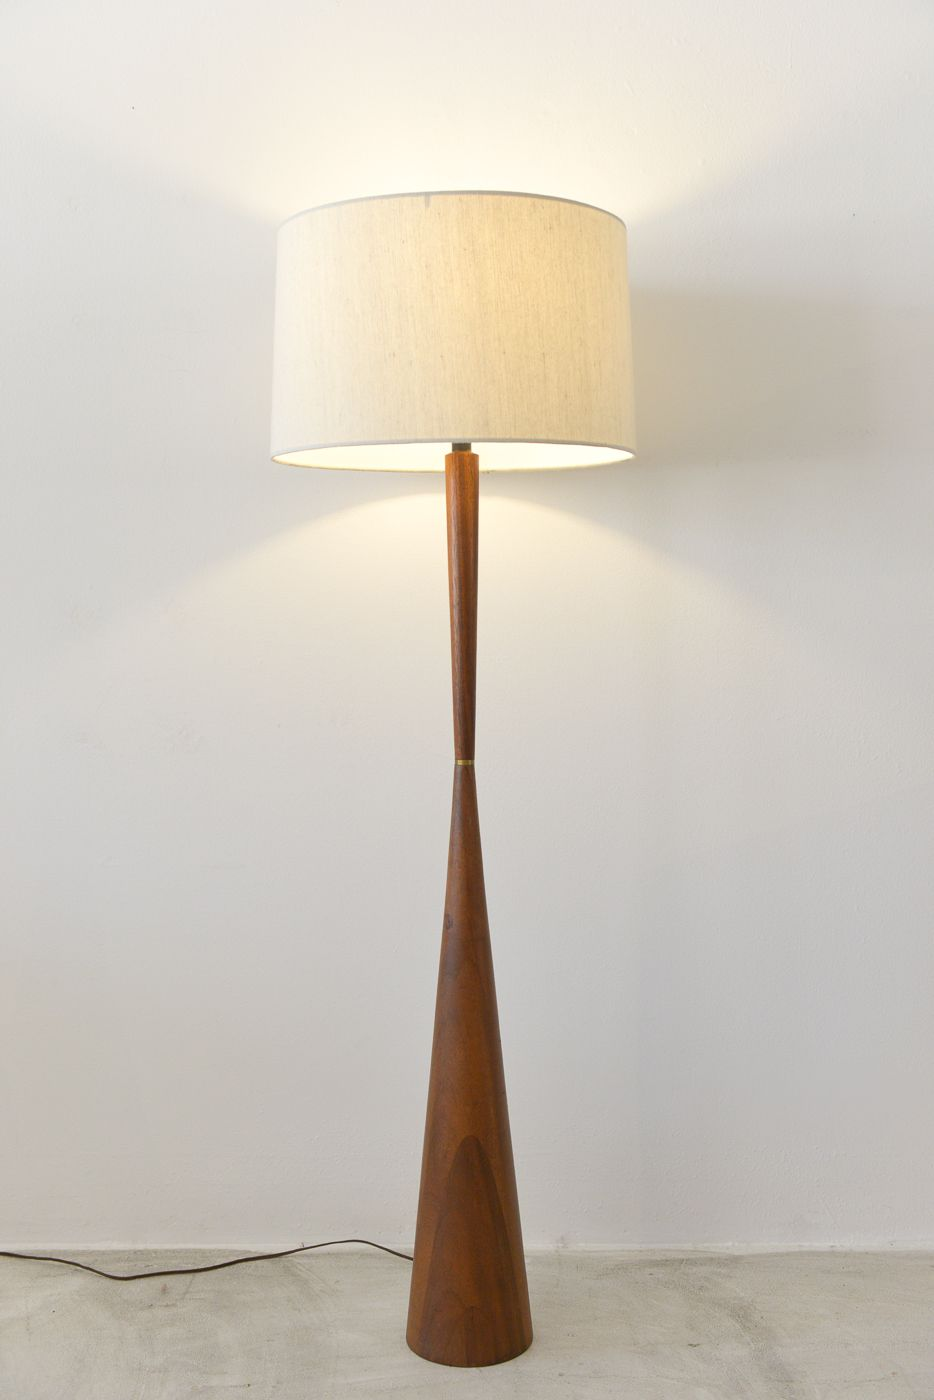 Pedestal Floor Lamps Sold Danish Modern Teak Pedestal Lamp Living Room Teak